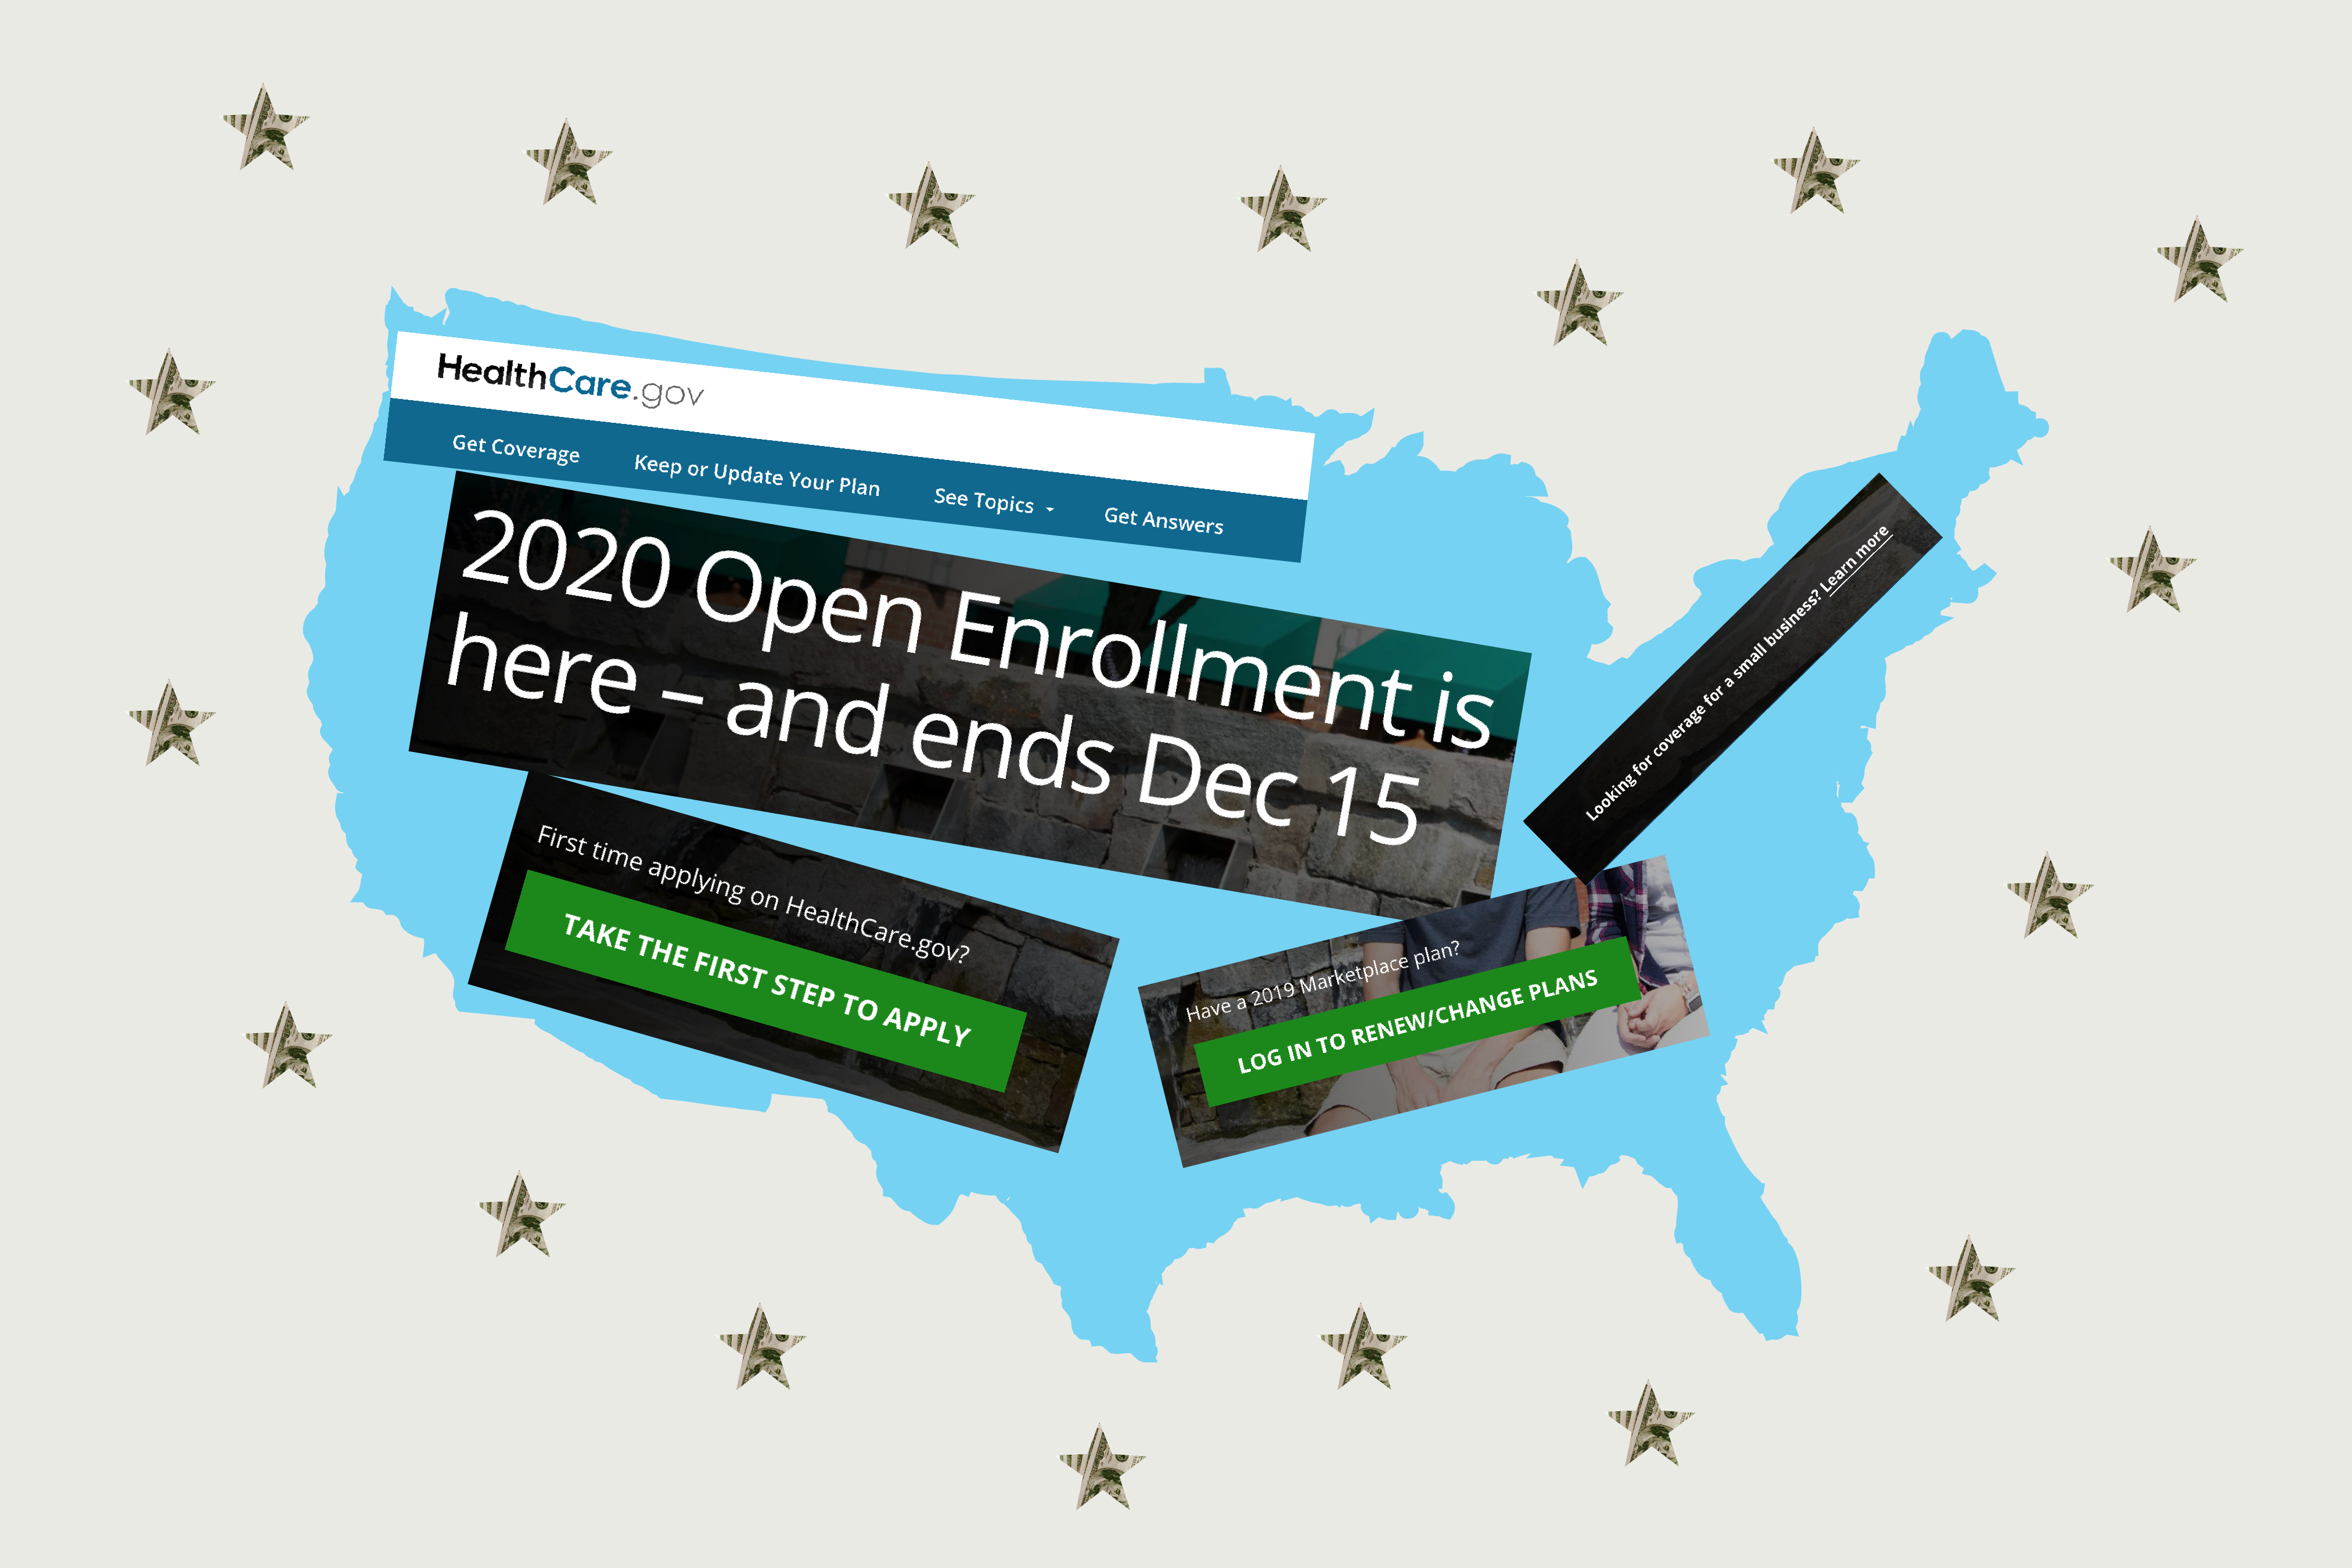 Renew, Update or Change your Health Plan for 2021